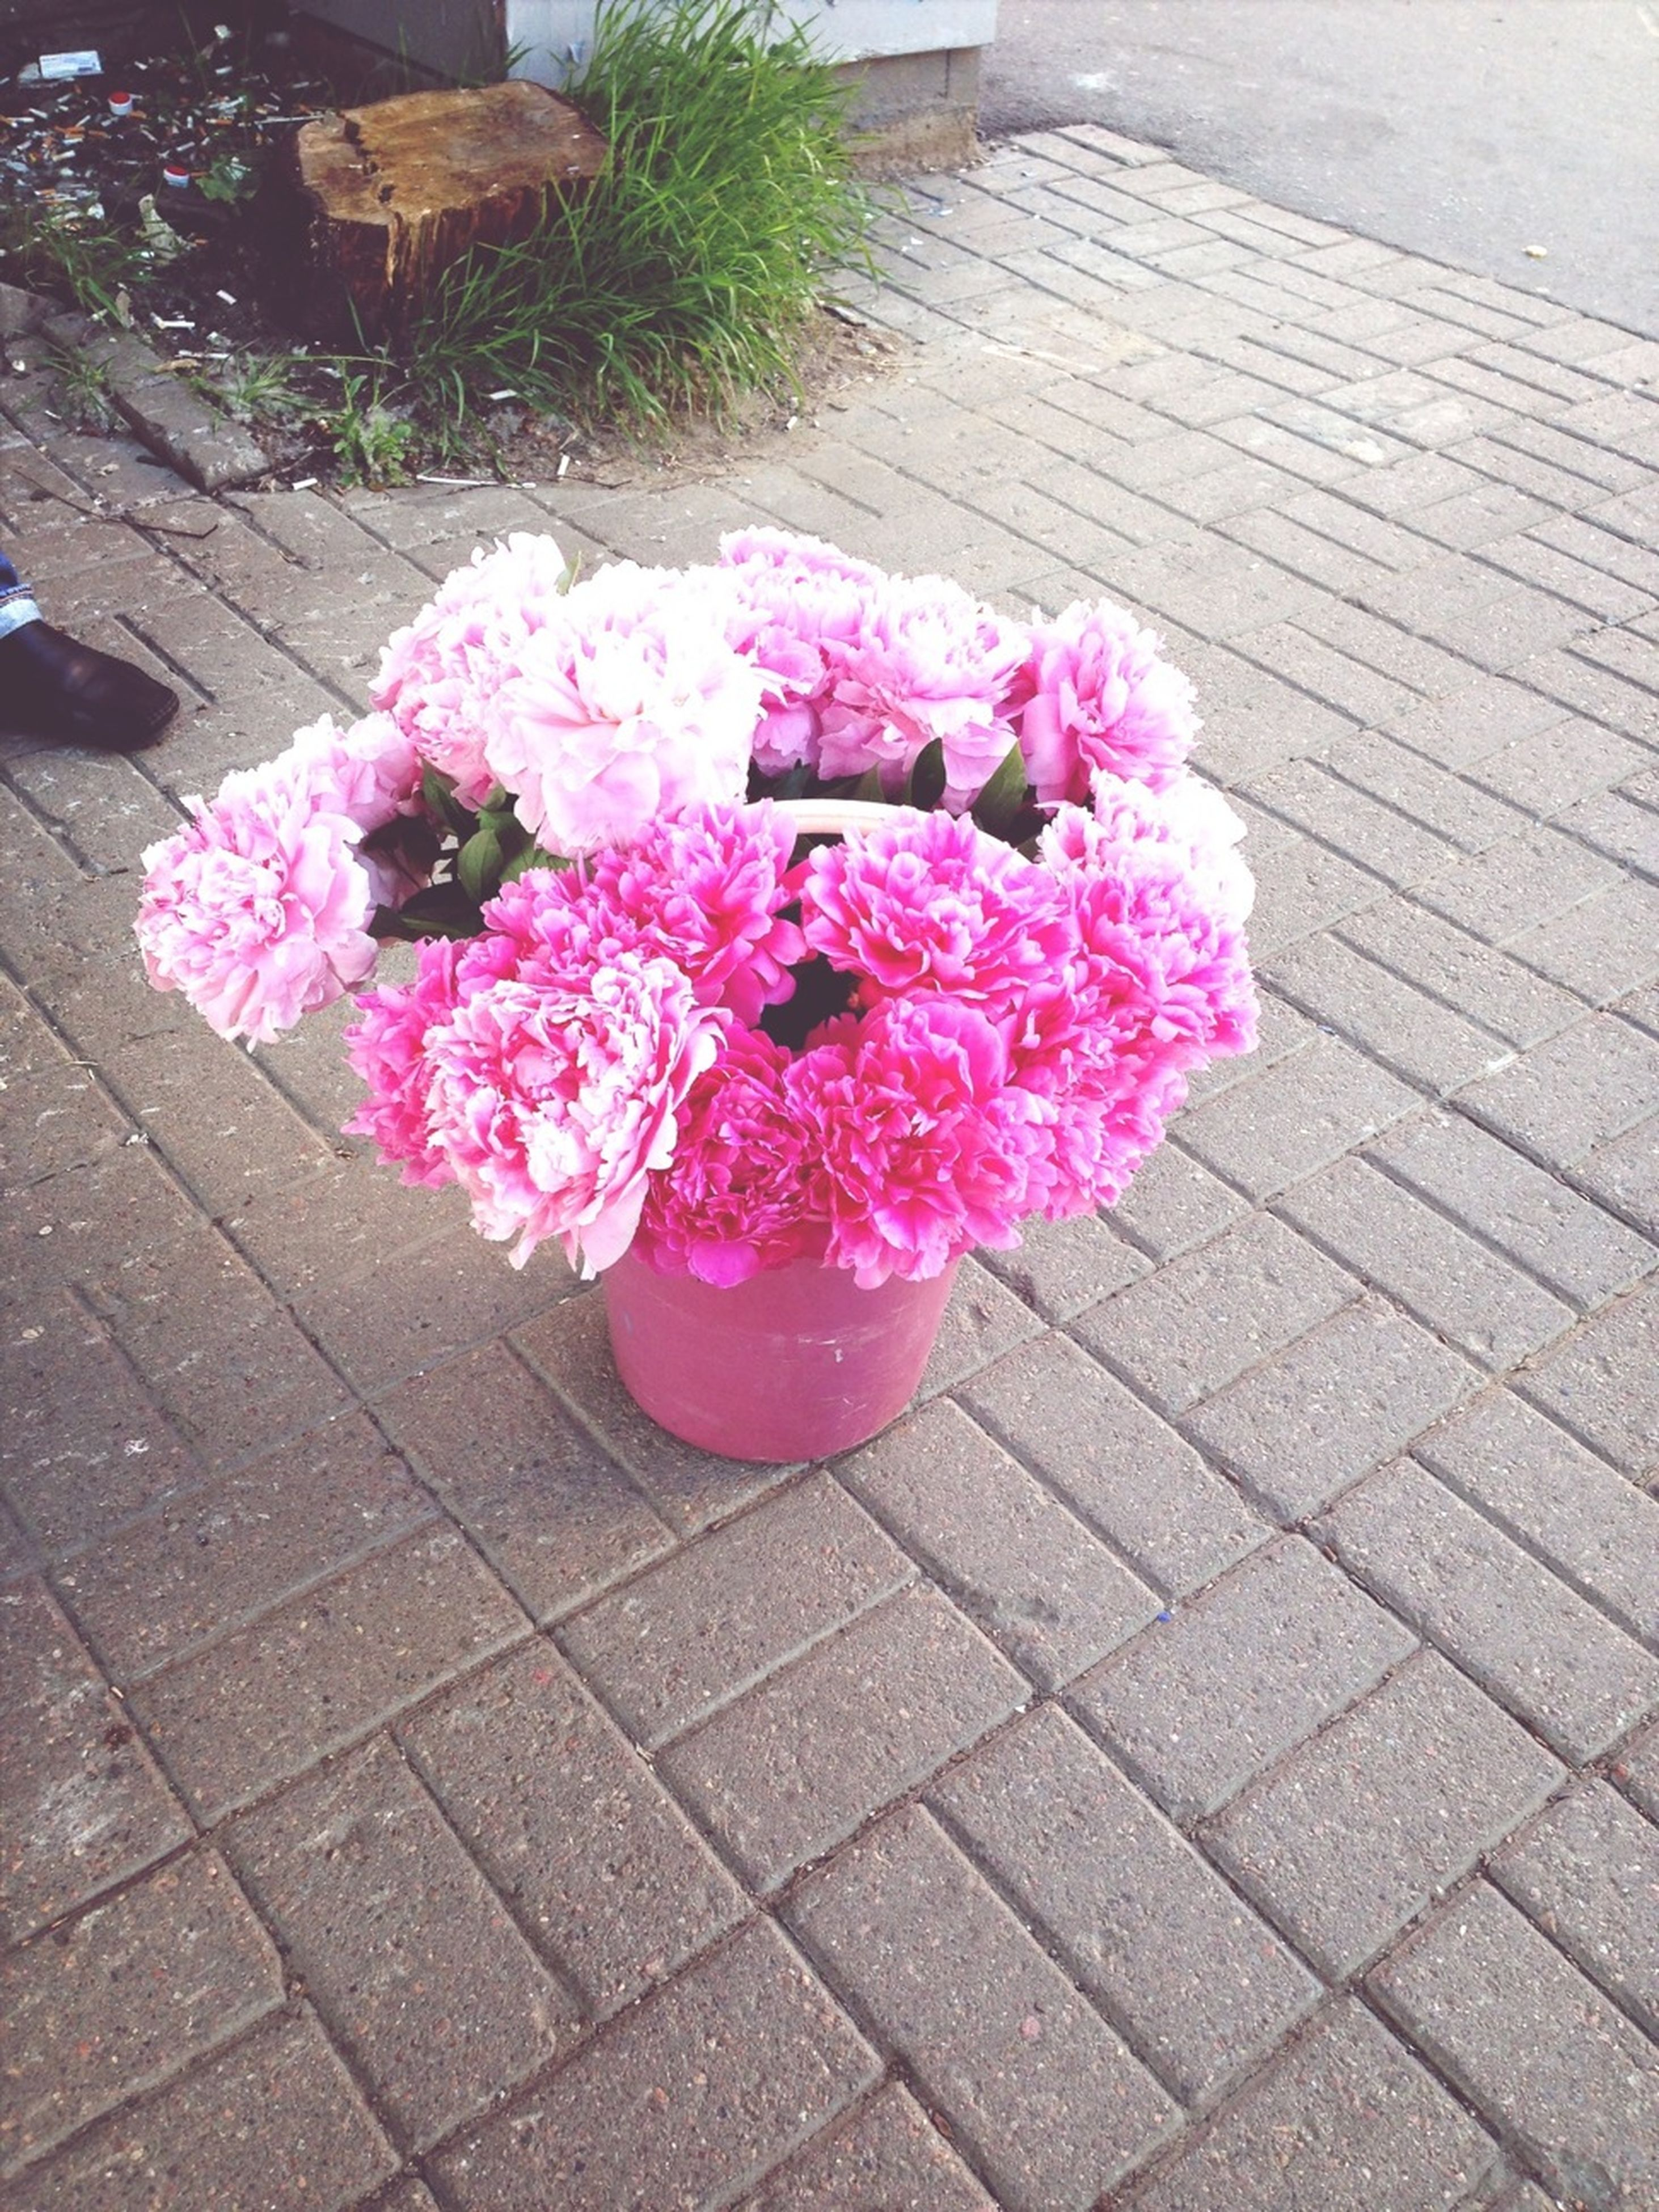 flower, pink color, freshness, high angle view, petal, fragility, paving stone, sidewalk, growth, plant, flower head, cobblestone, outdoors, rose - flower, nature, sunlight, beauty in nature, day, pink, blooming